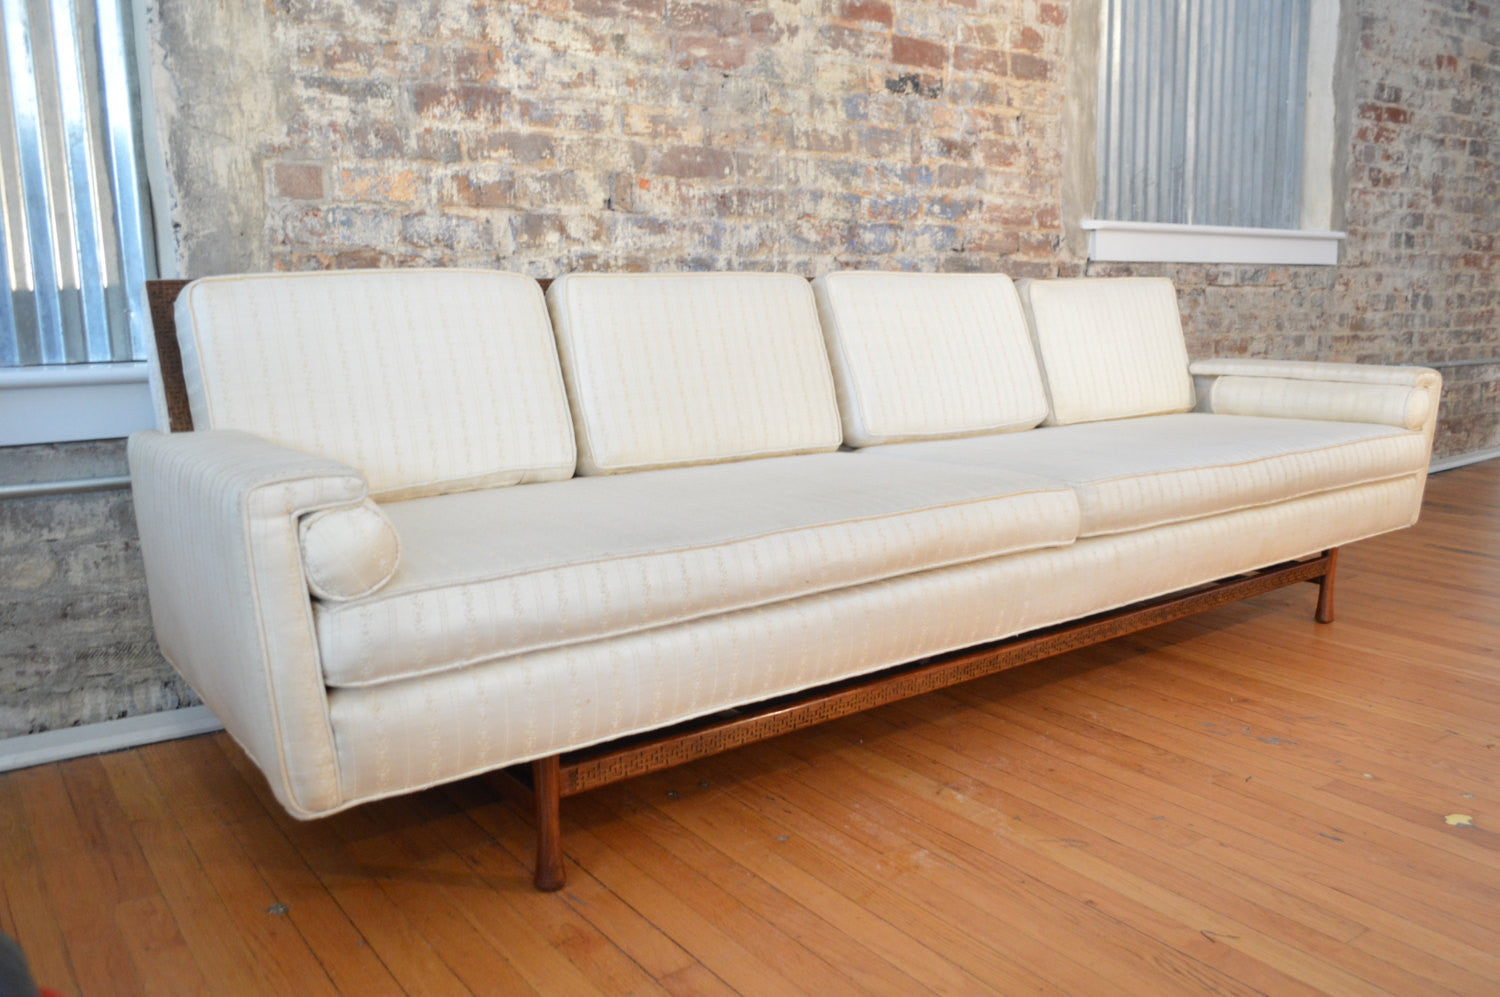 elegant mid century modern sofa with greek key design  danish  - elegant mid century modern sofa with greek key design  danish modern sofa